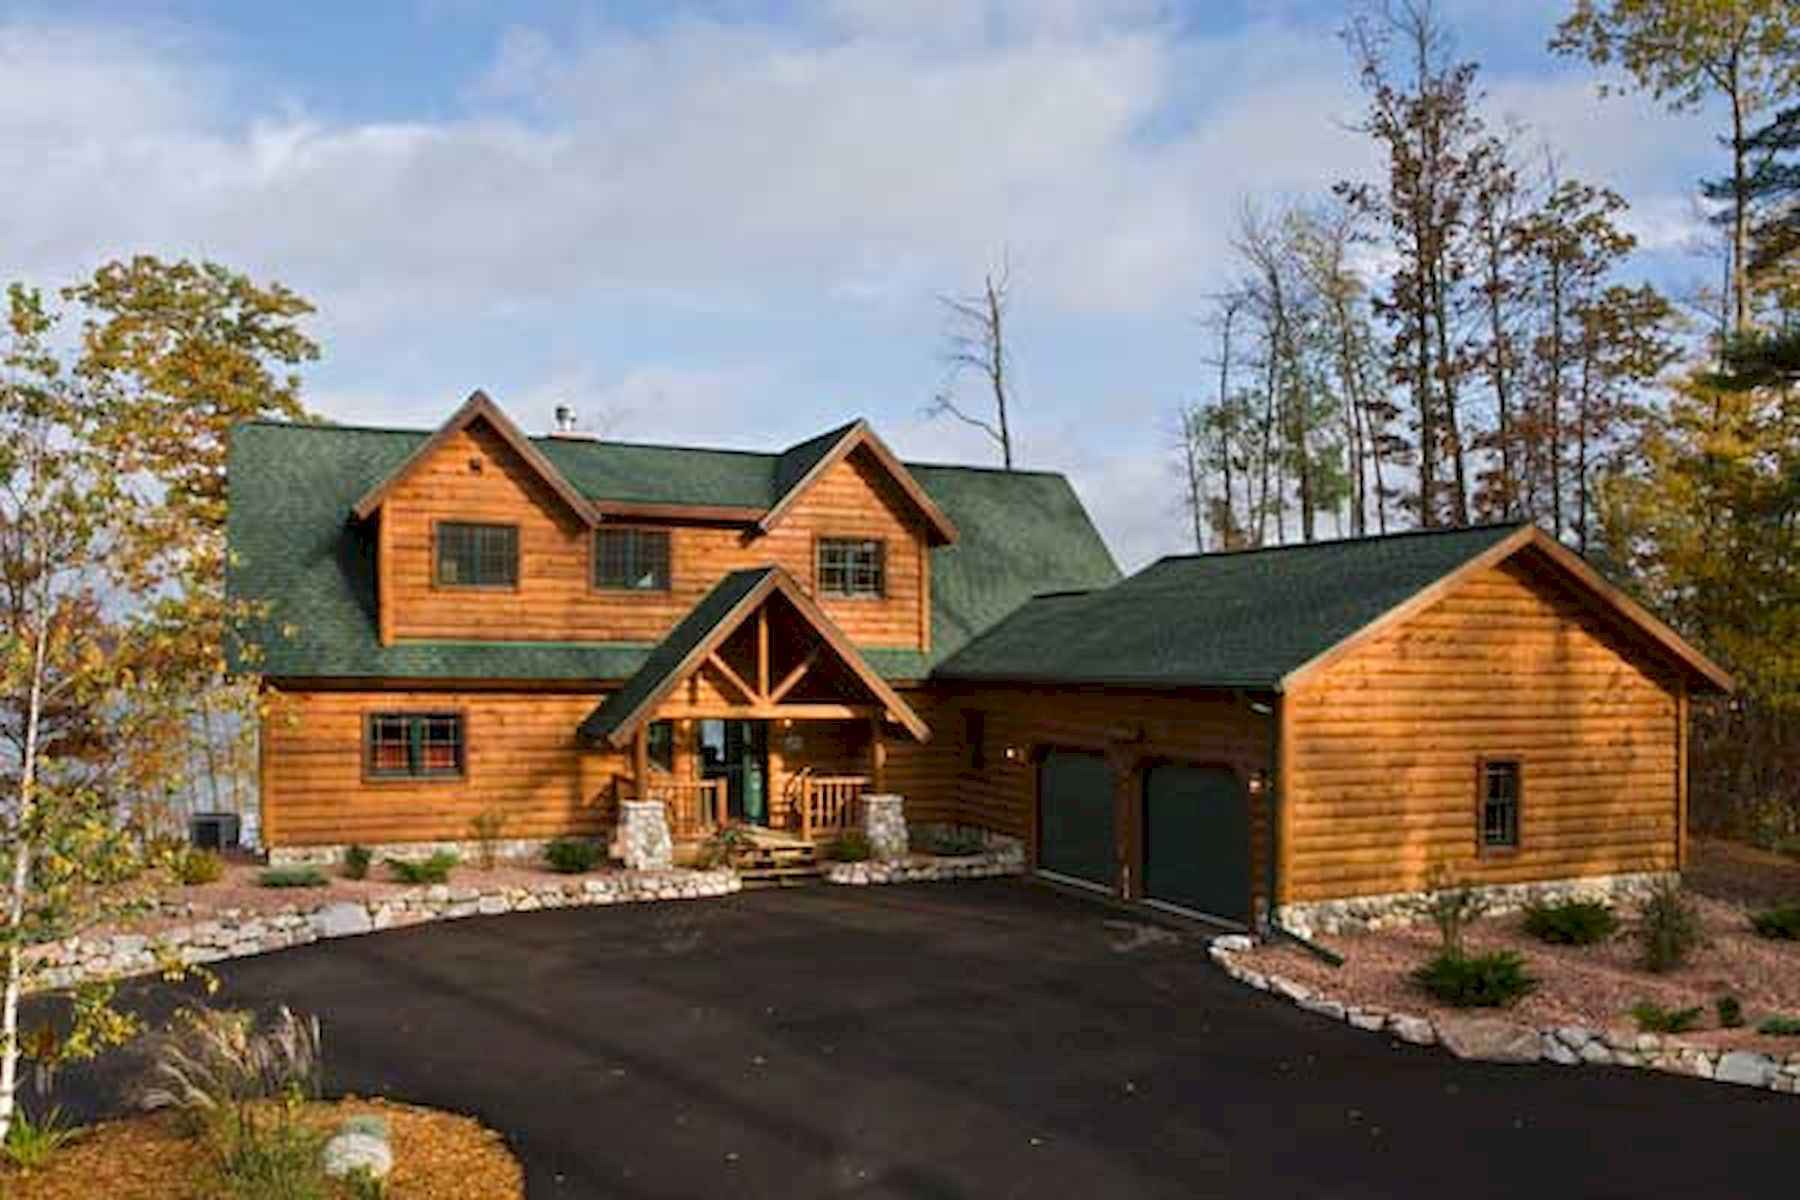 60 Rustic Log Cabin Homes Plans Design Ideas And Remodel (35)